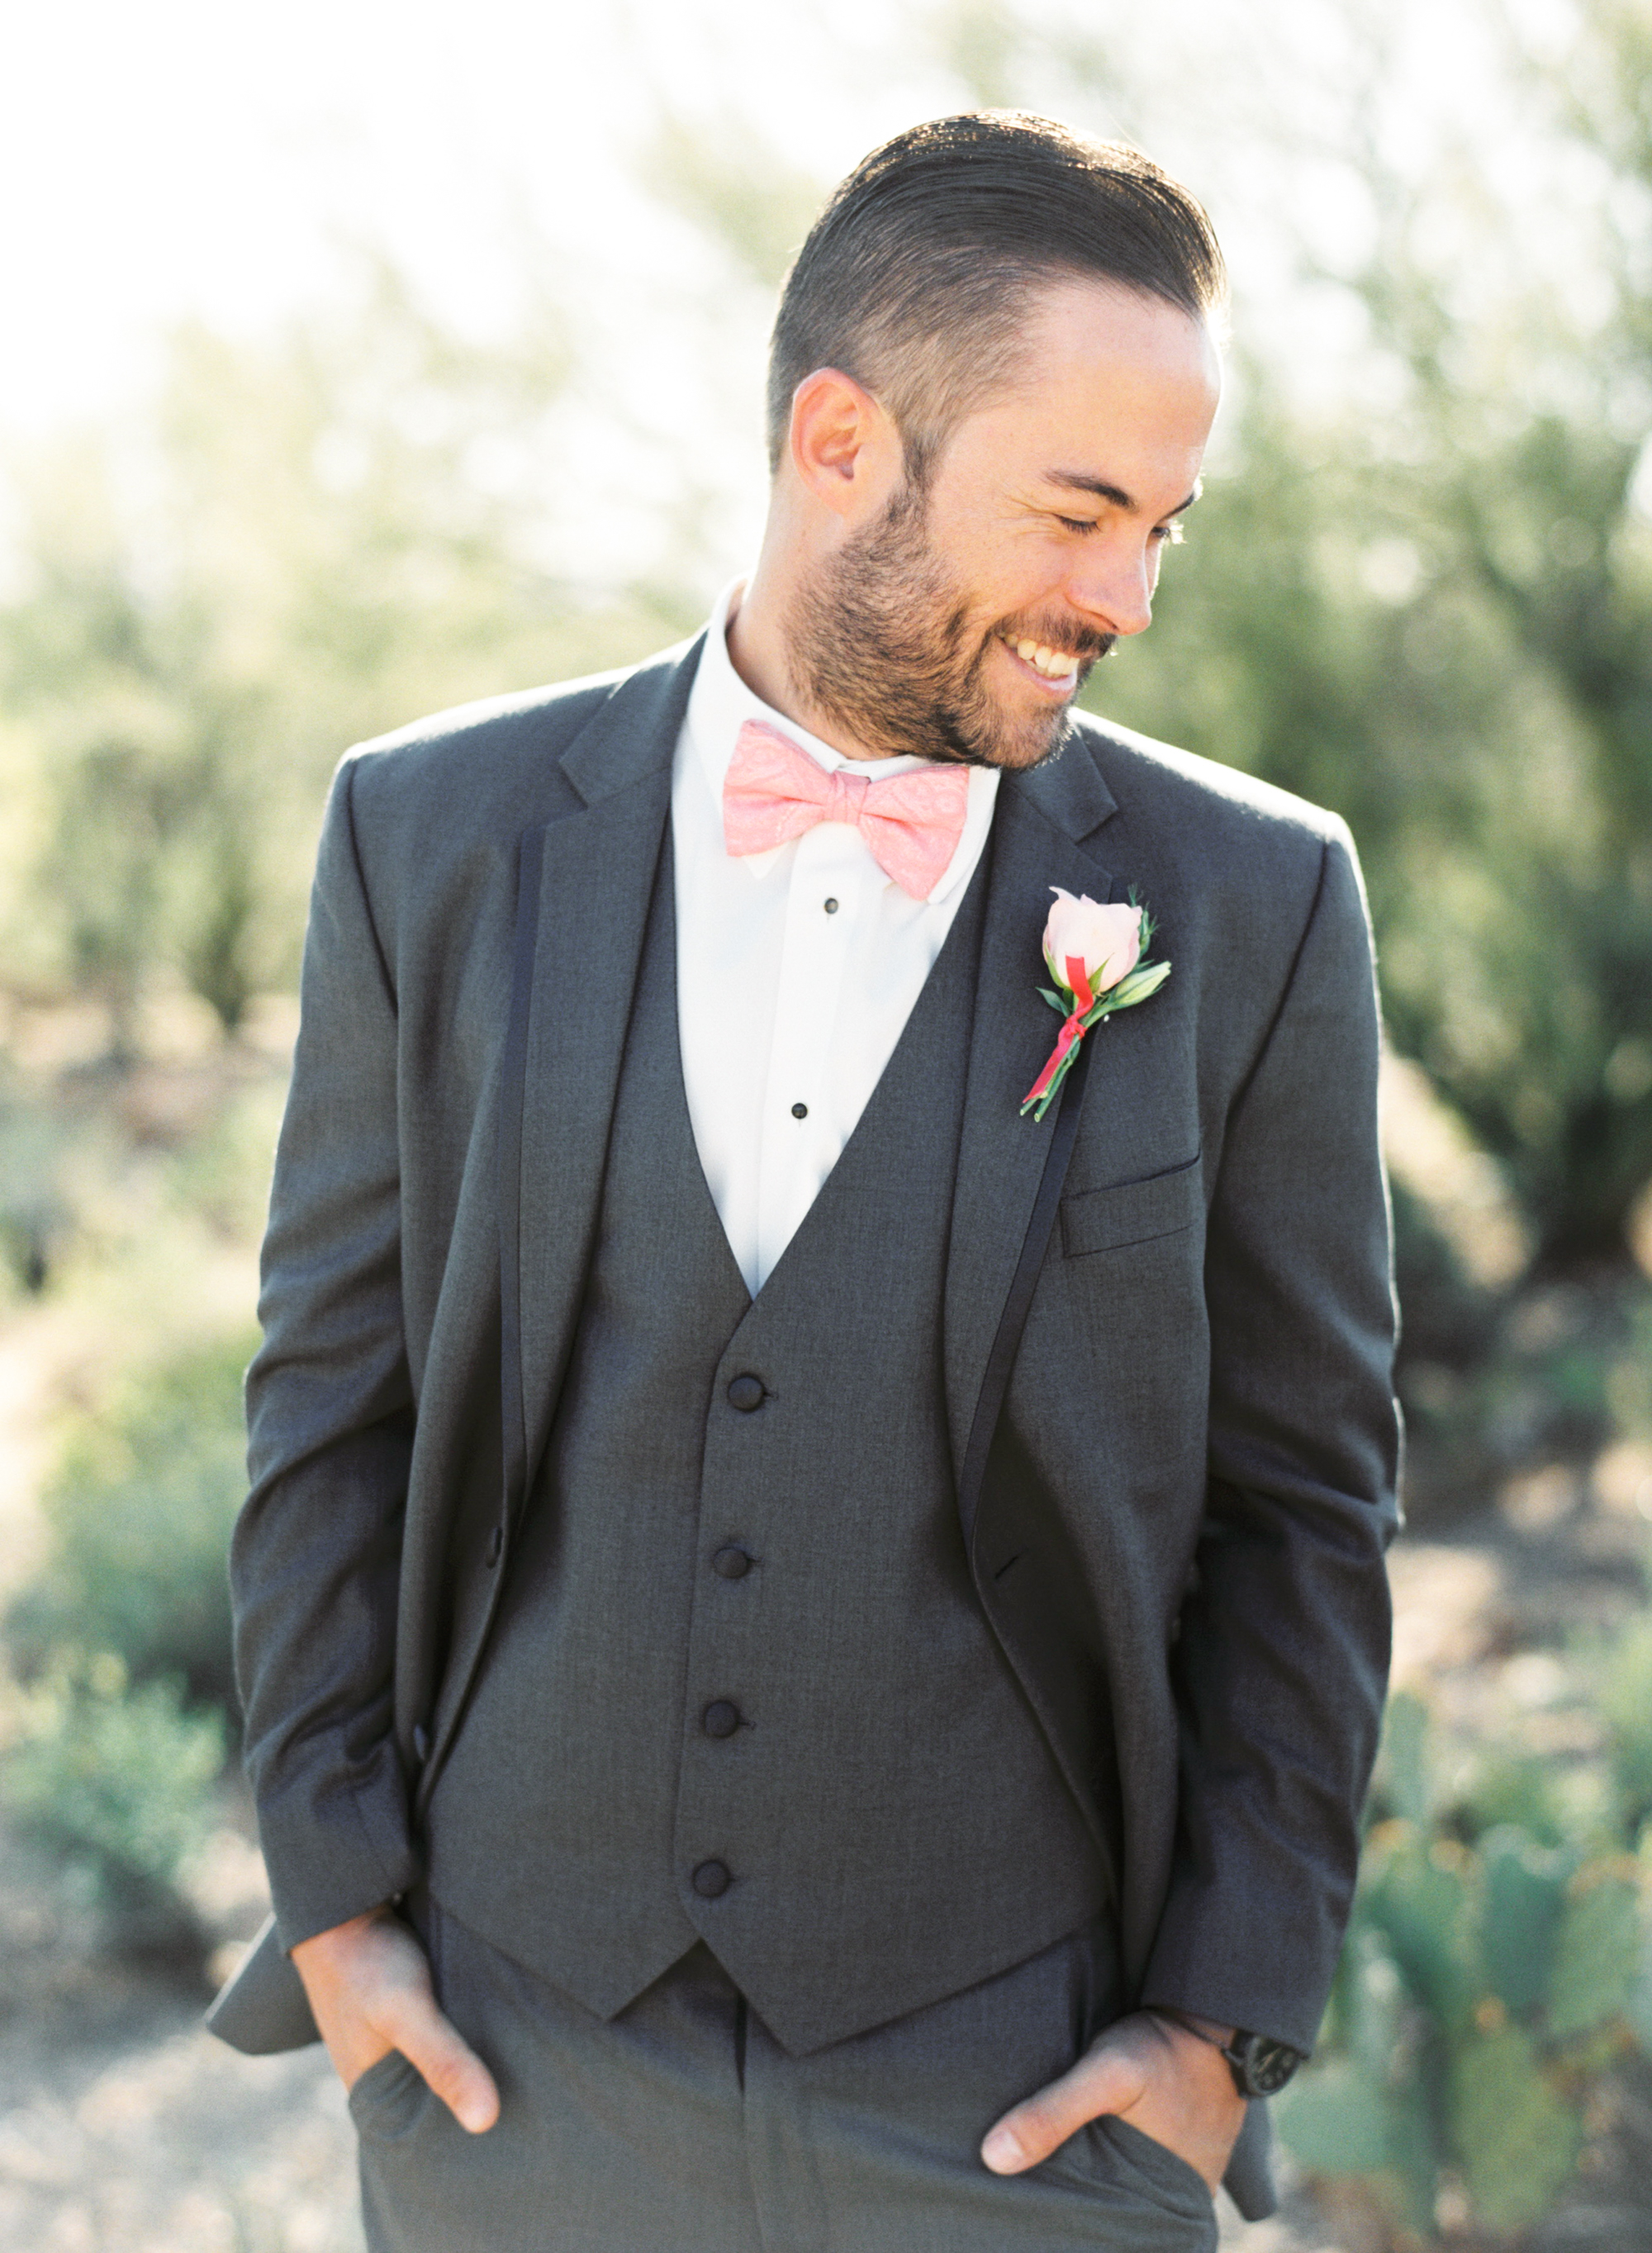 Handsome groom in gray suit